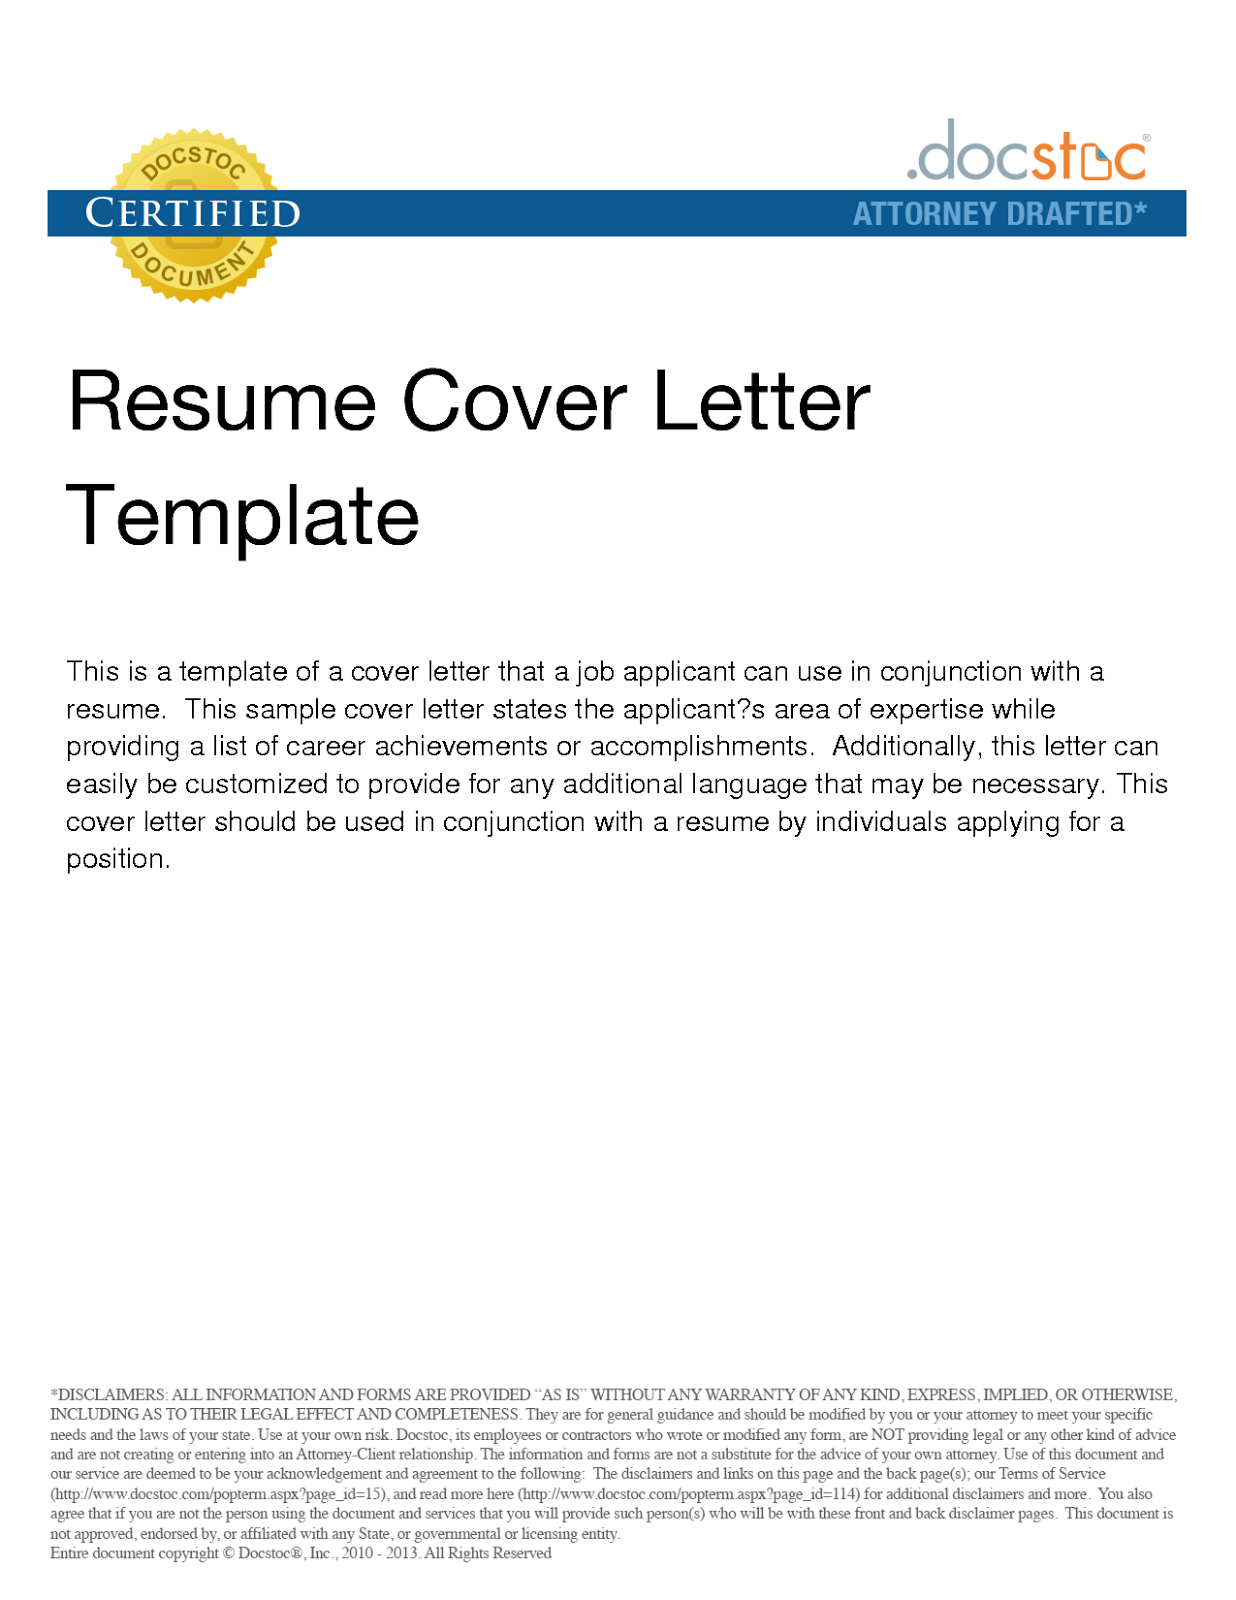 Word Cover Letter Templates  Resume Cover Page